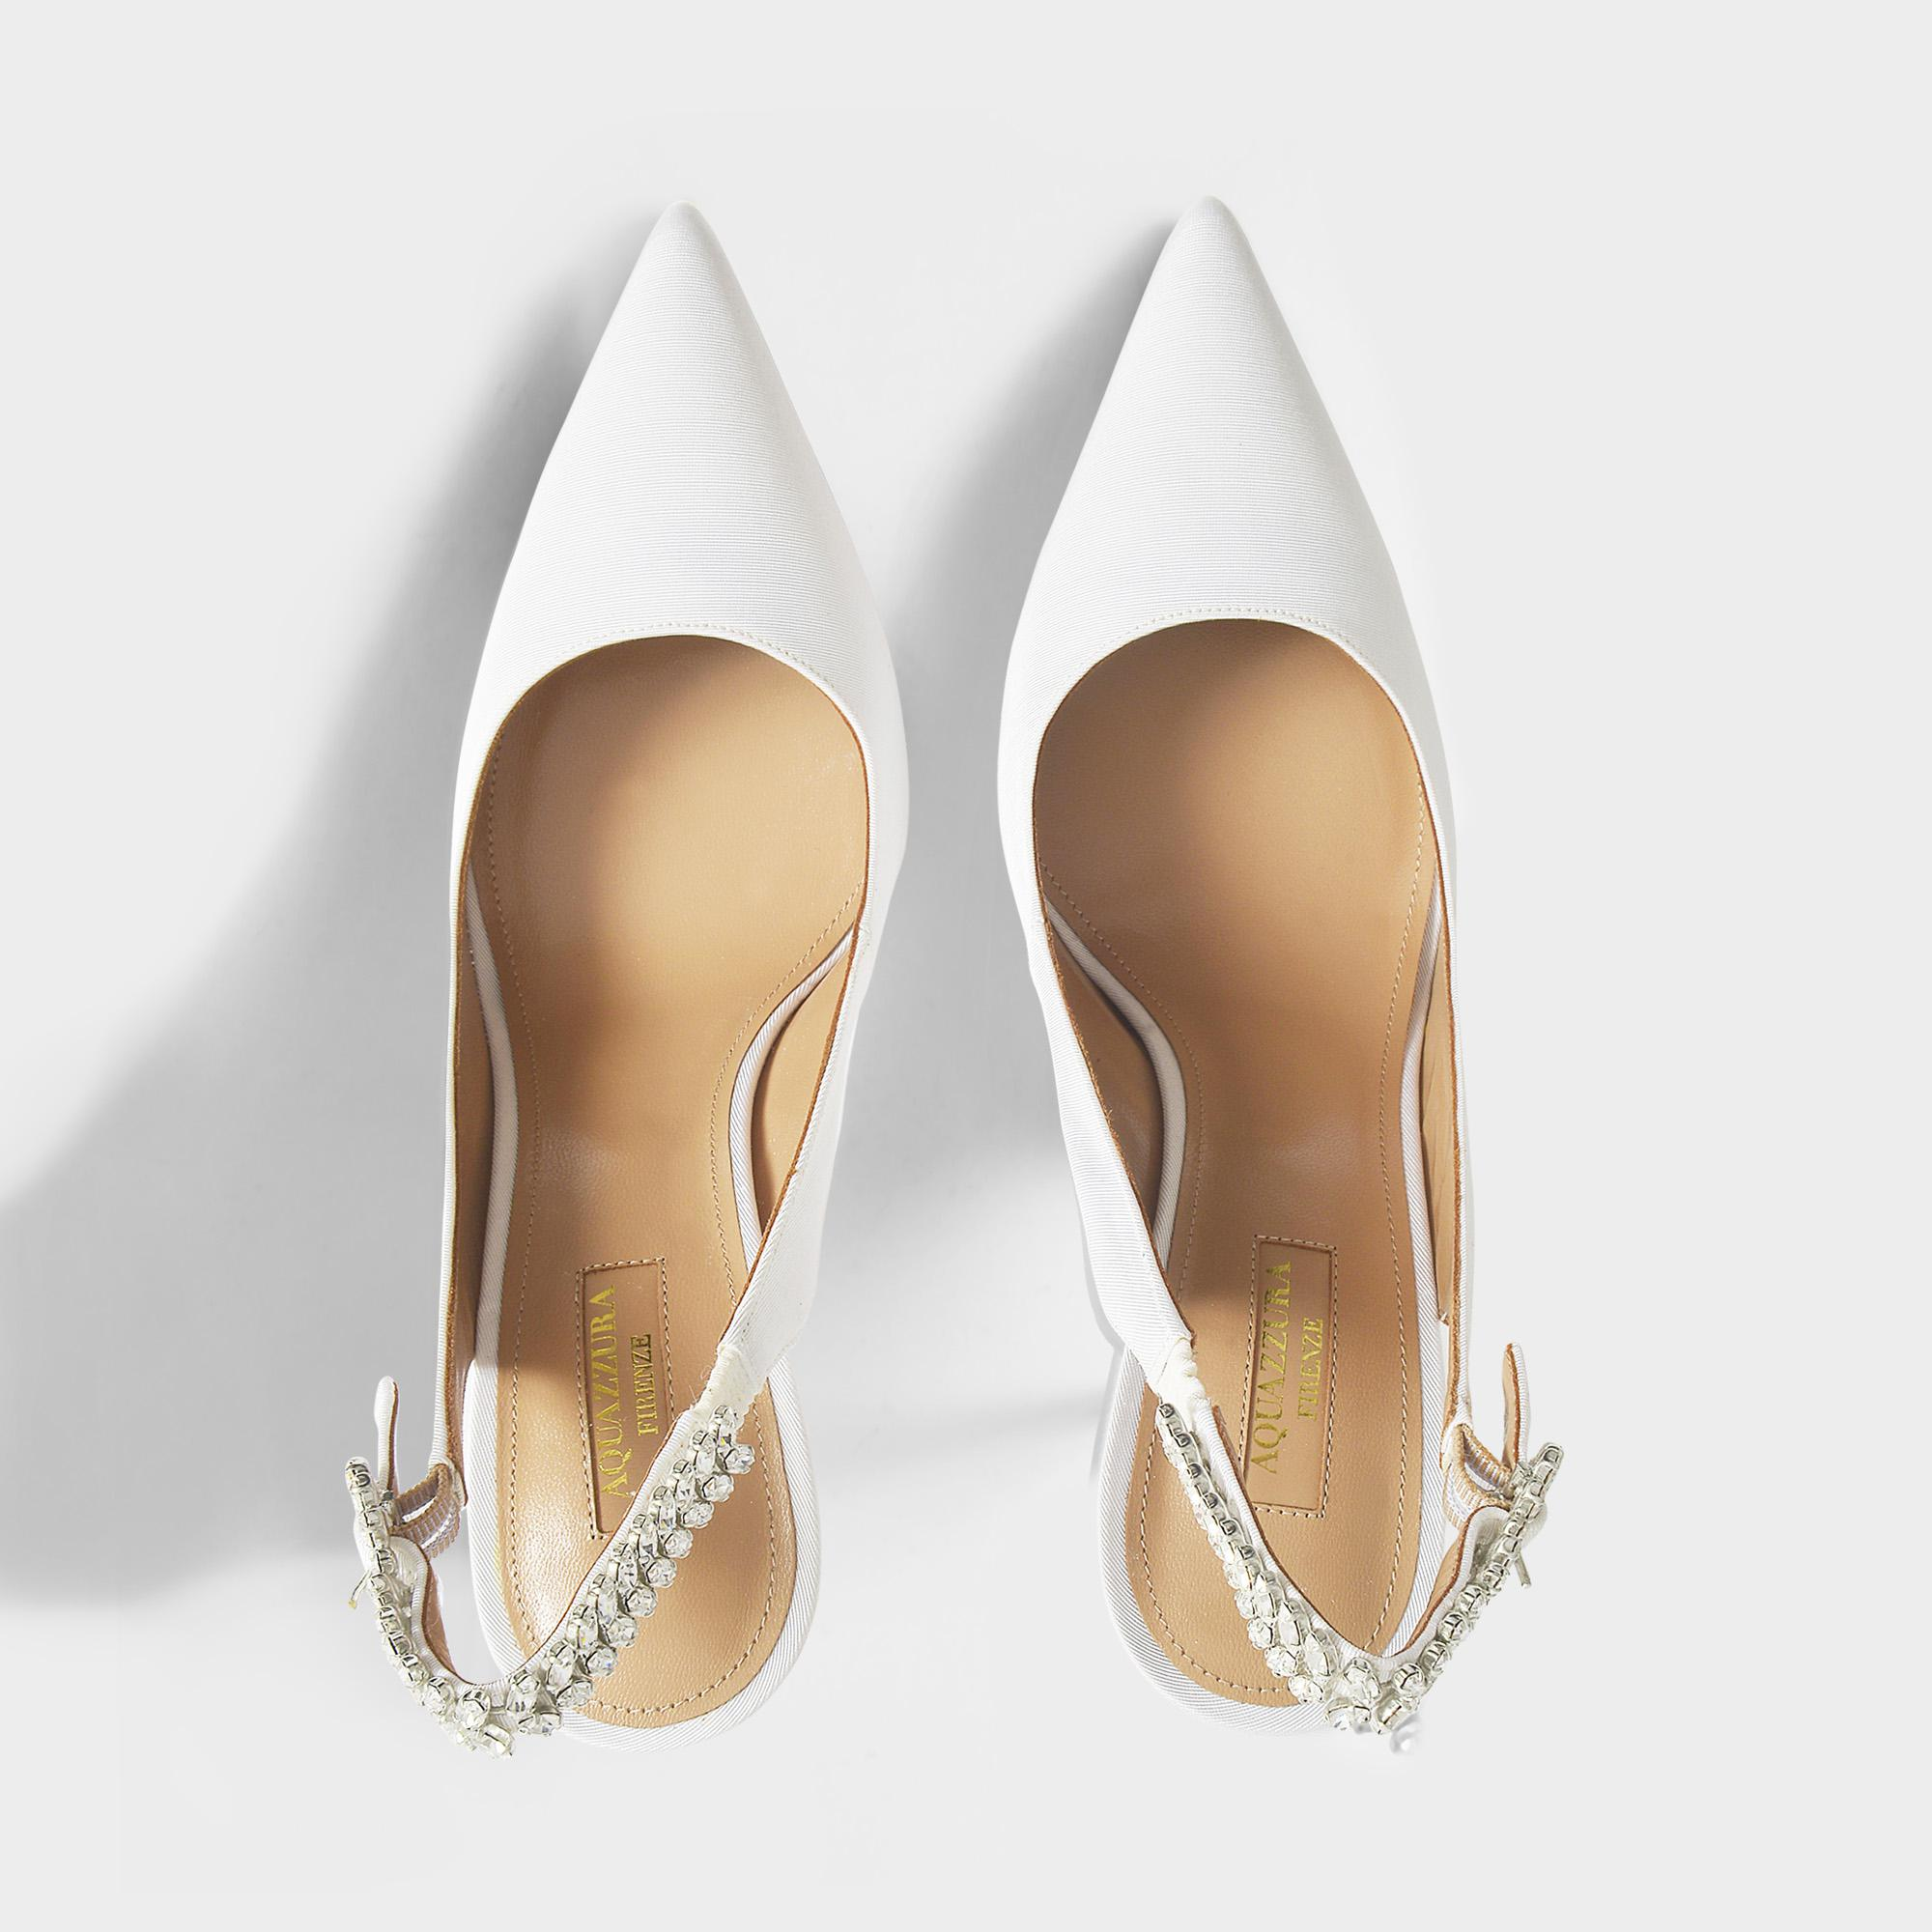 961e65fddca Lyst - Aquazzura Portrait Of Lady 105 Slingbacks In White Satin Silk ...